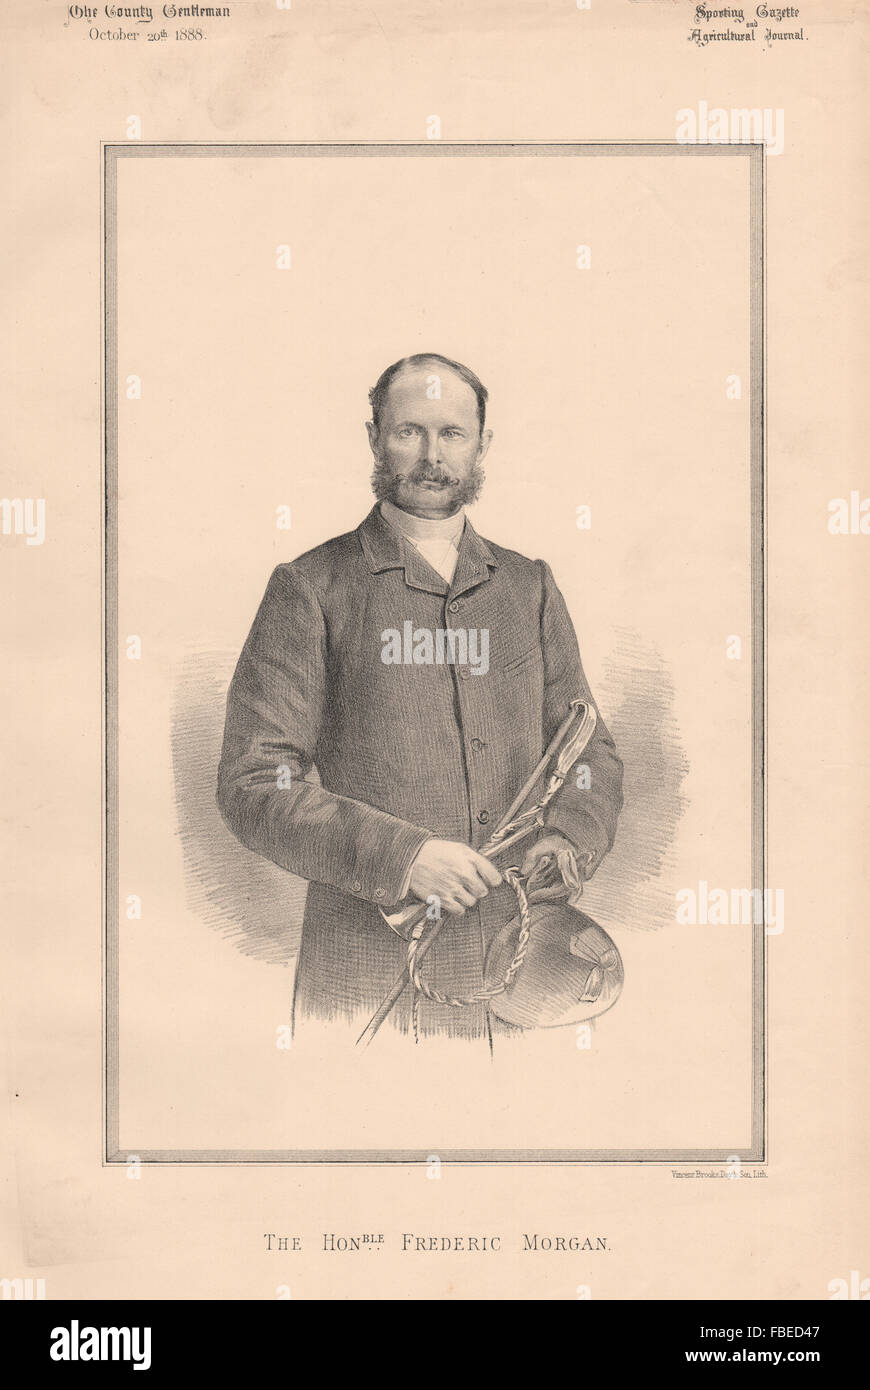 El Honorable Frederic Morgan, grabado antiguo 1888 Imagen De Stock